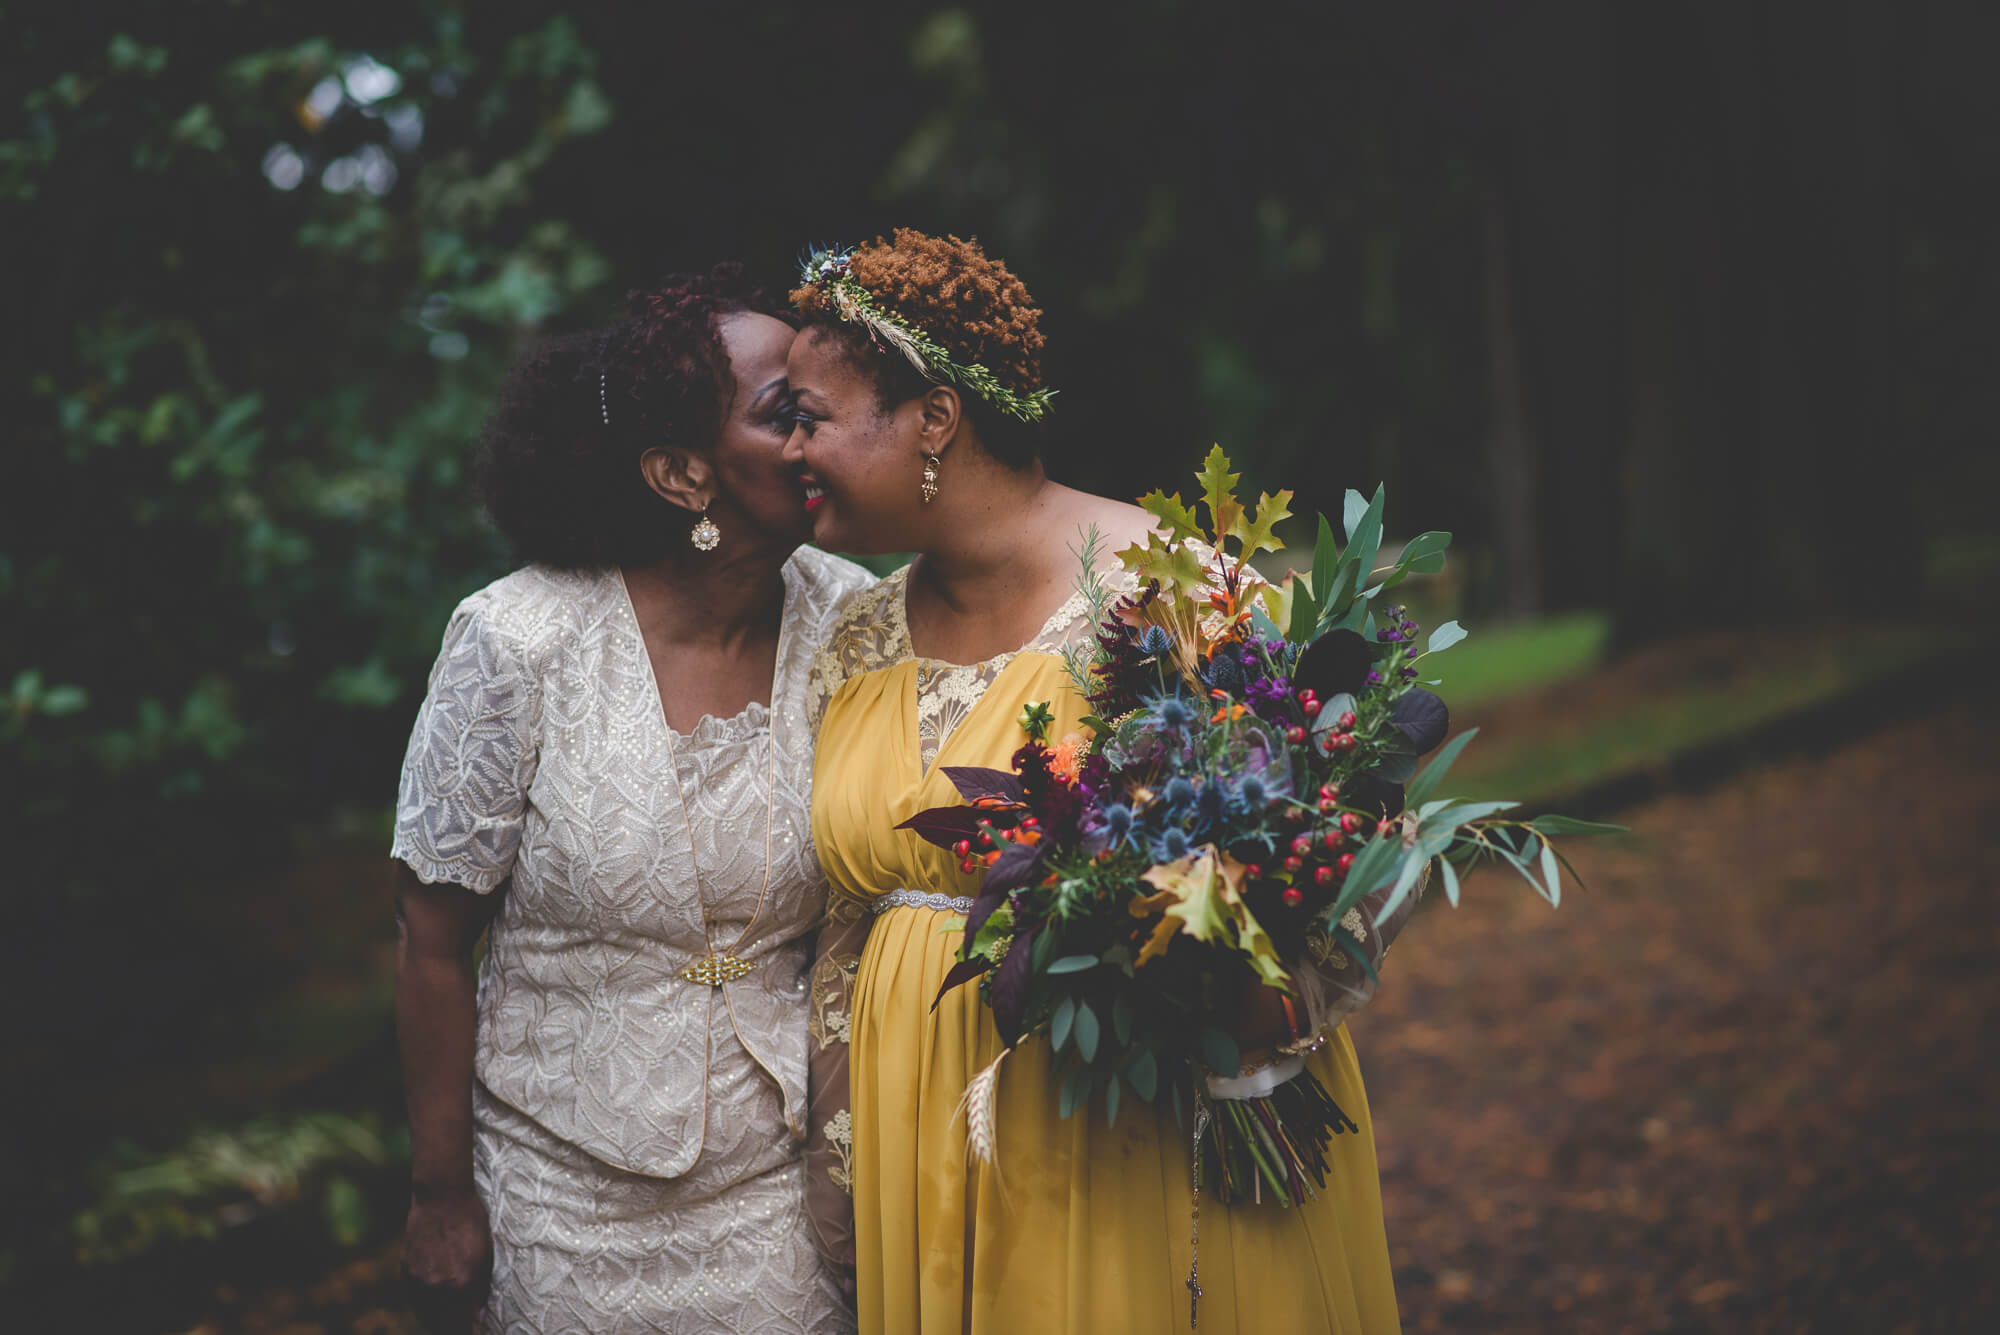 mother of the bride whispering in the bride's ear during family portraits